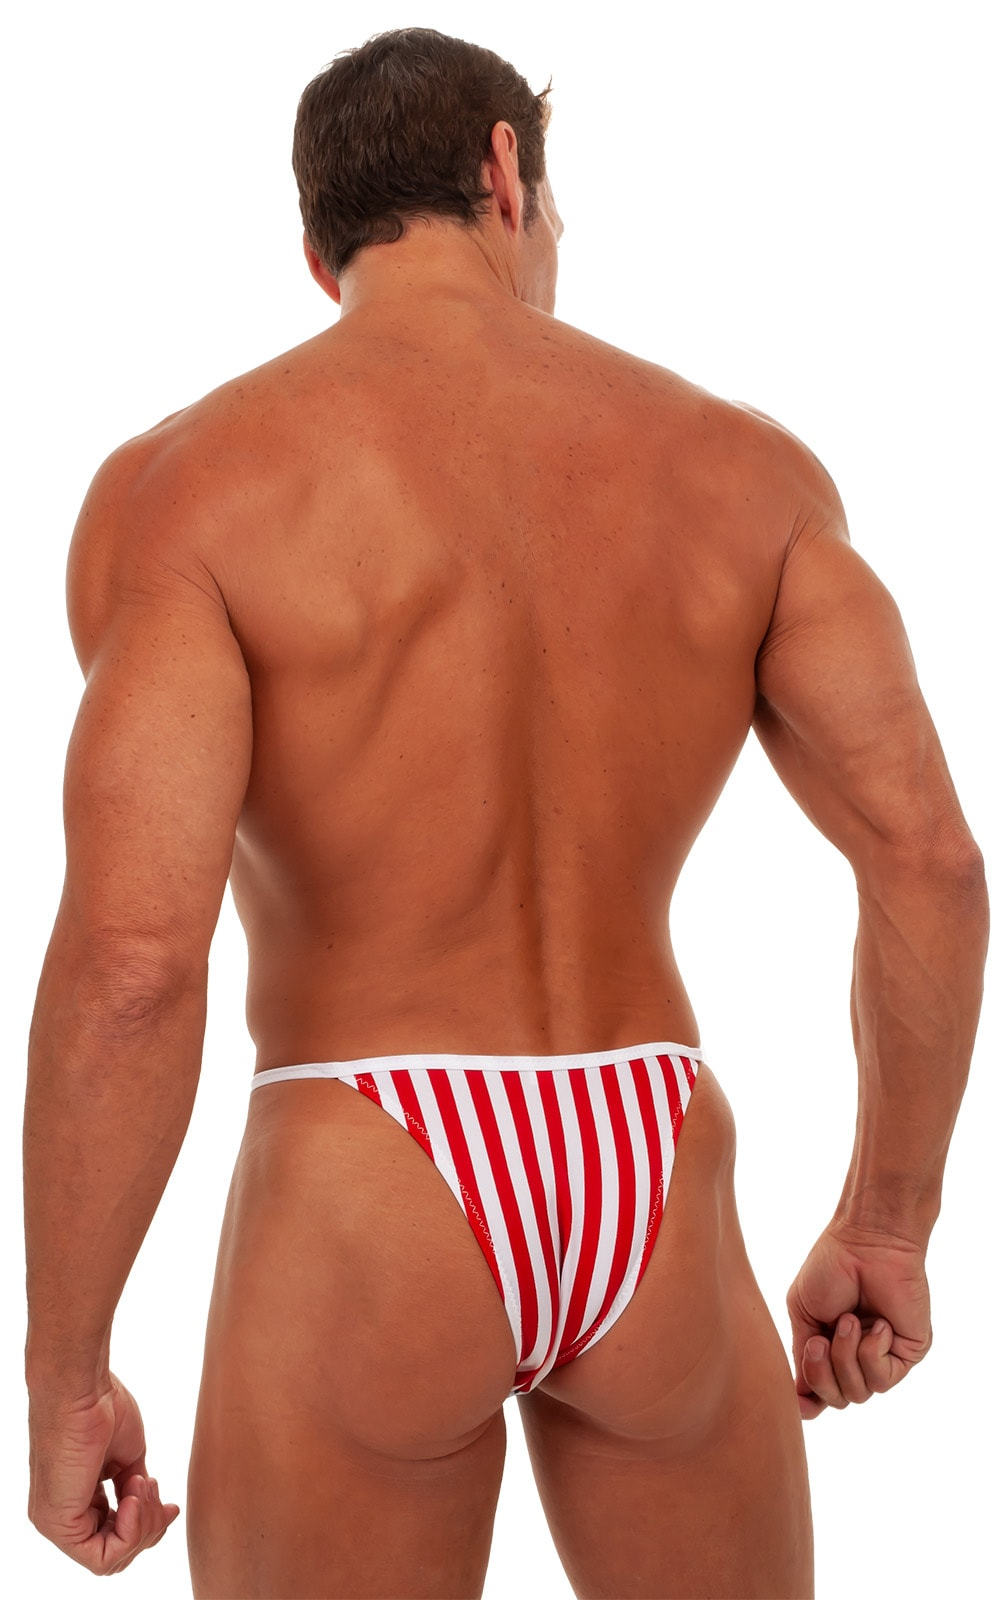 Banded - High Cut - Half Back - Swimsuit in Stars & Stripes 3